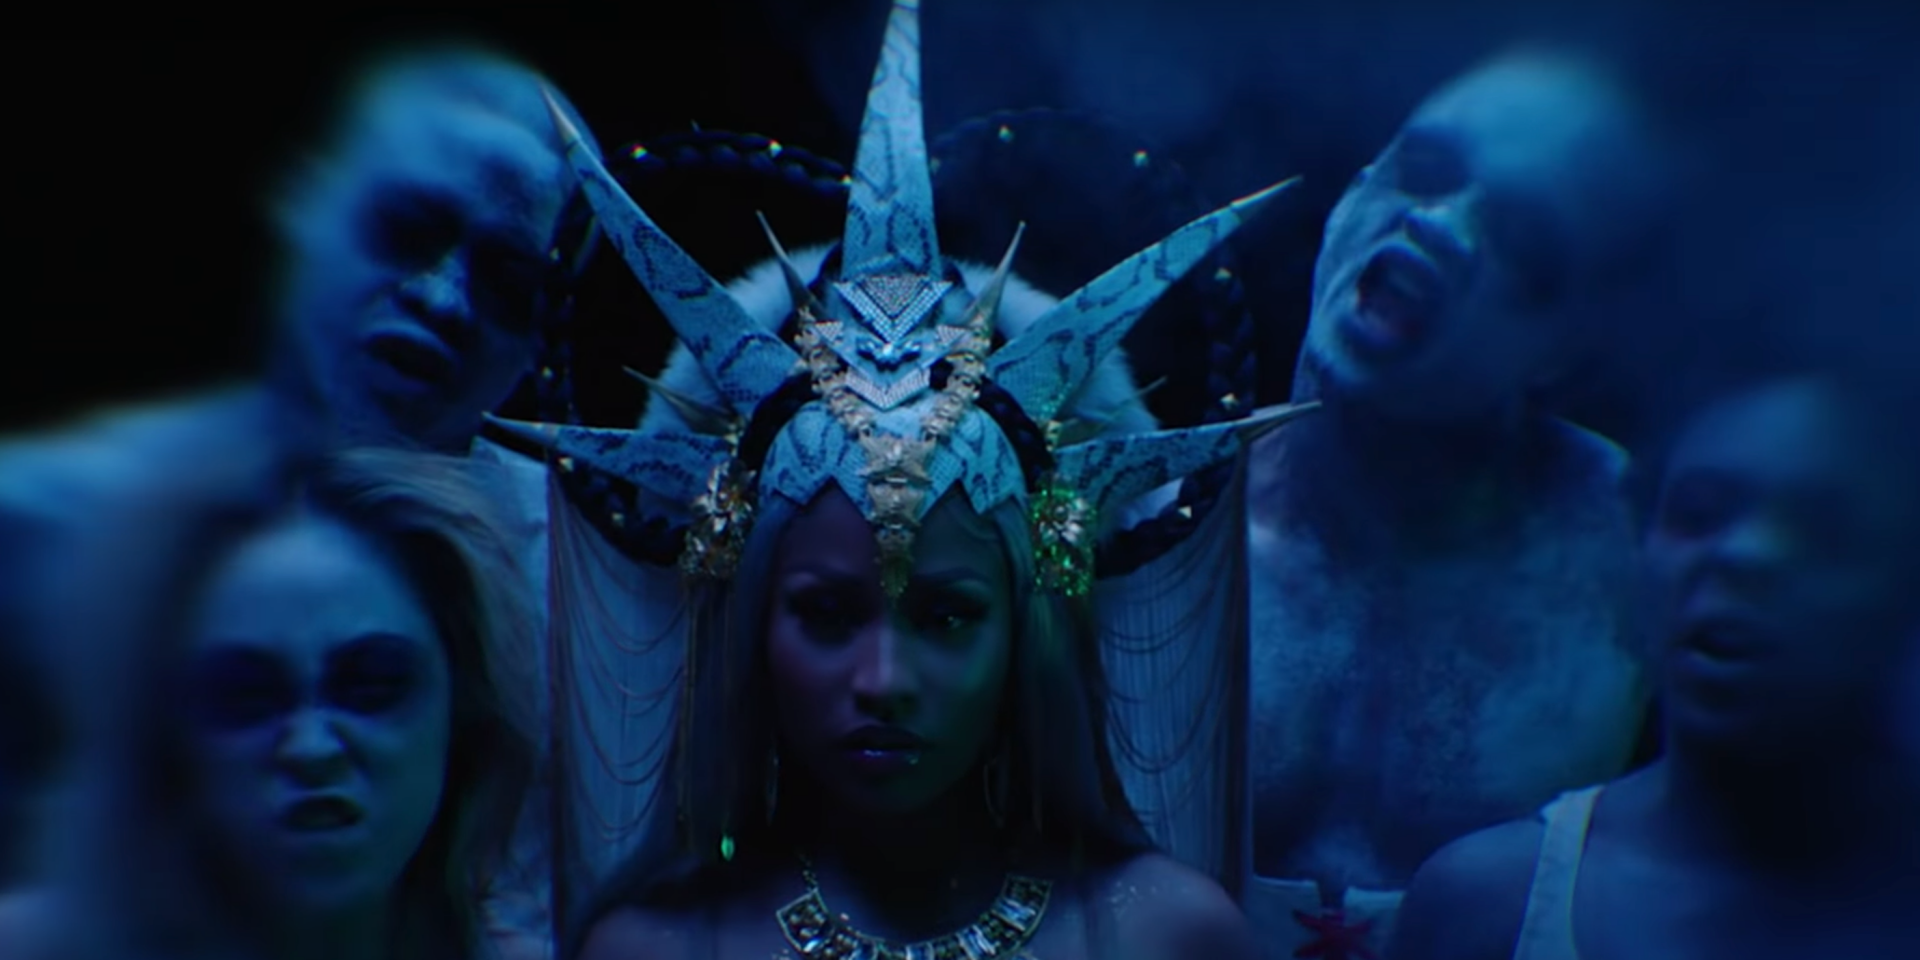 Nicki Minaj shows us who's queen in music video for 'Hard White' – watch